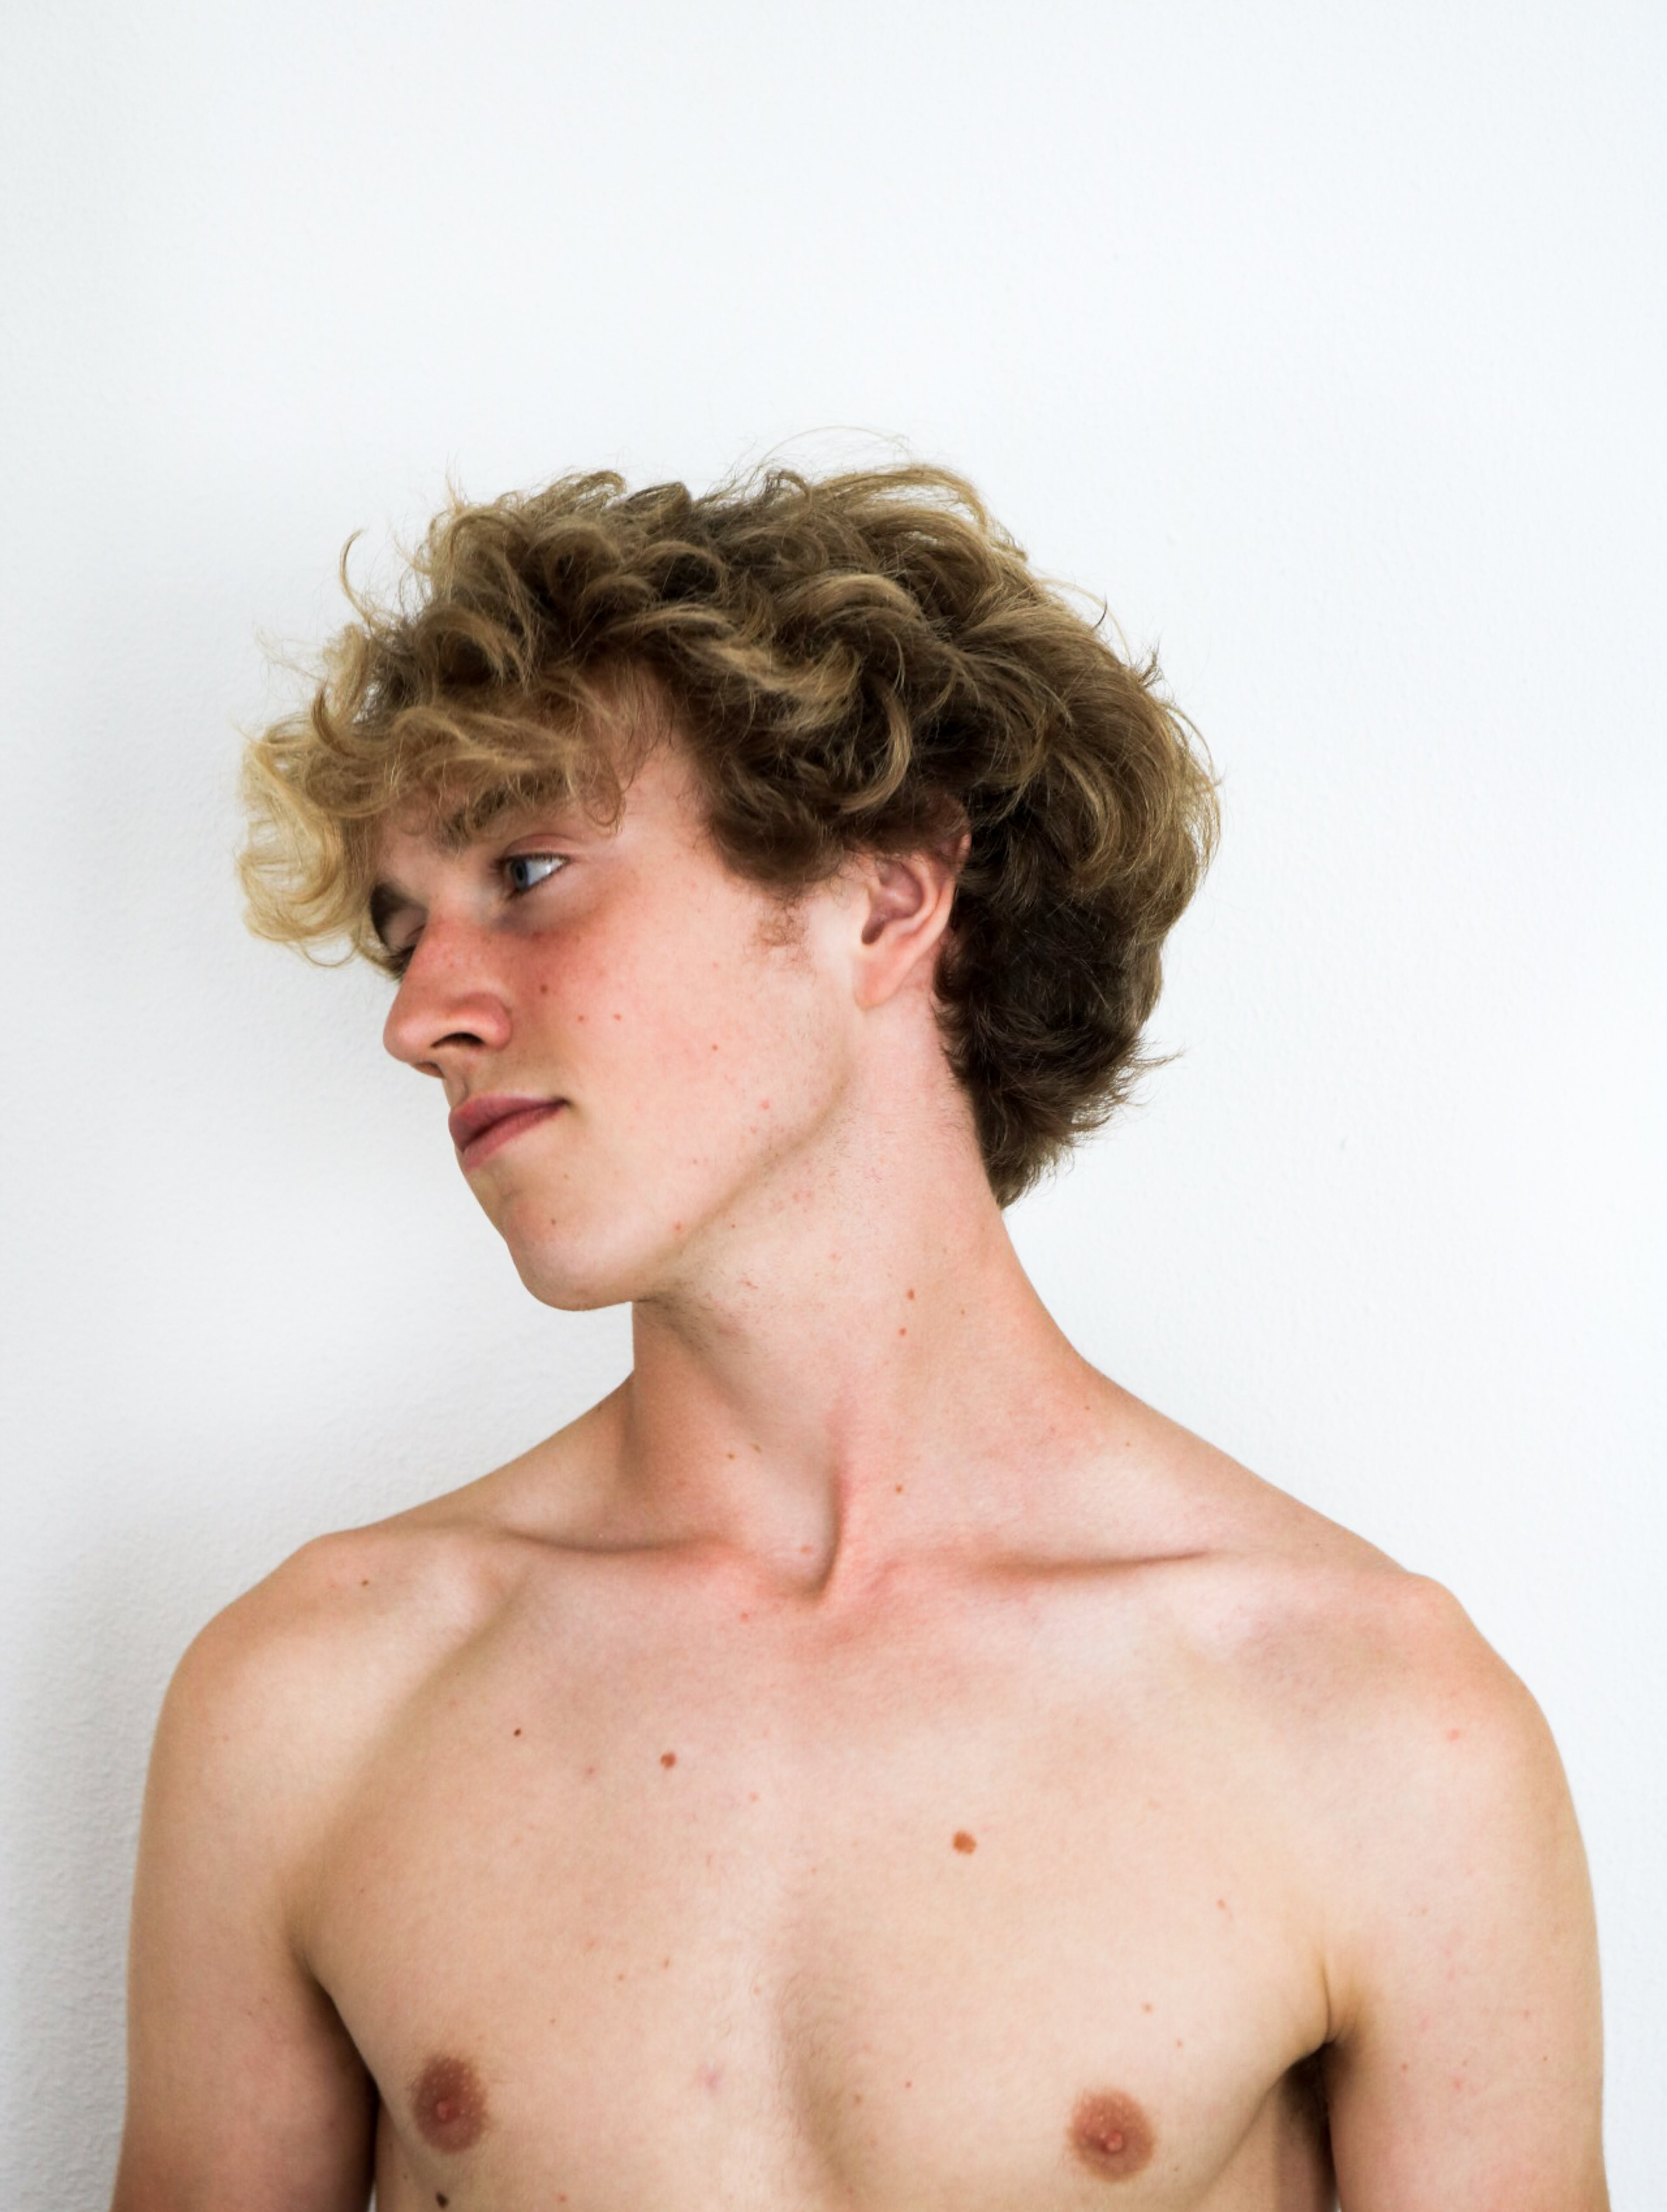 Topless Man Facing Right Side